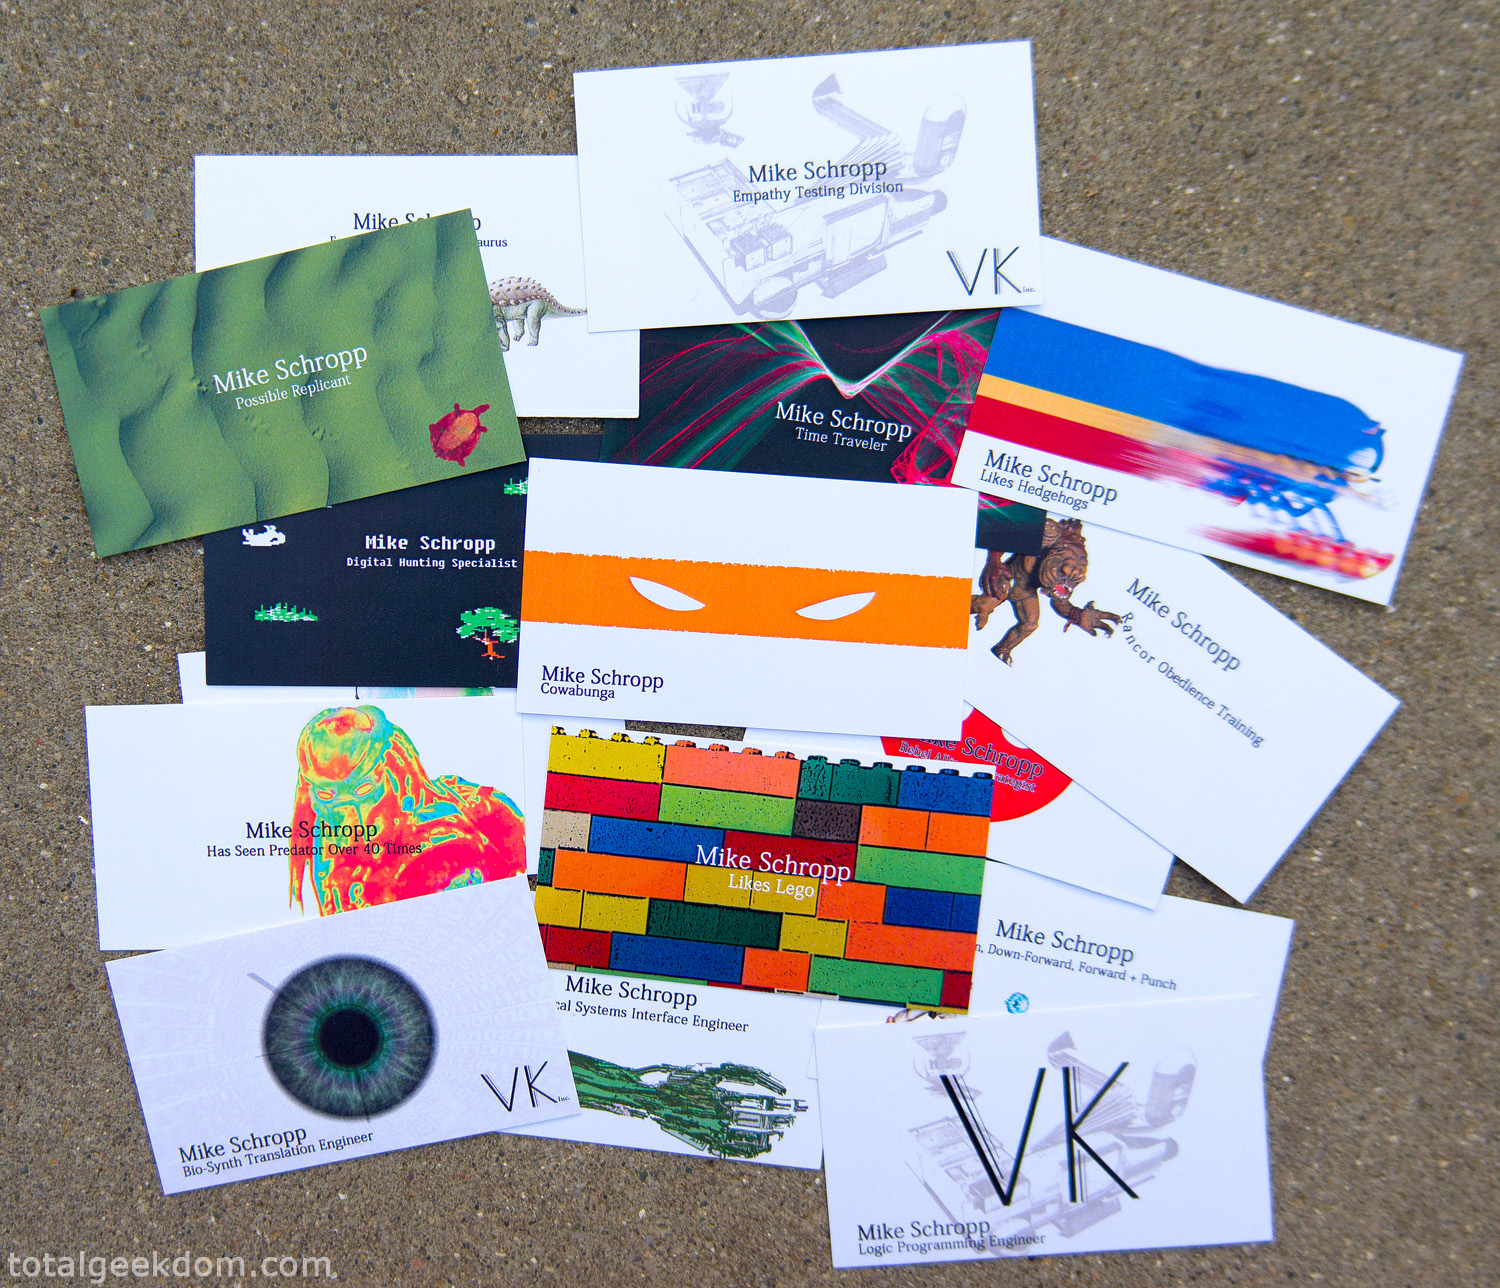 Geeky Business Card Designs | Total Geekdom